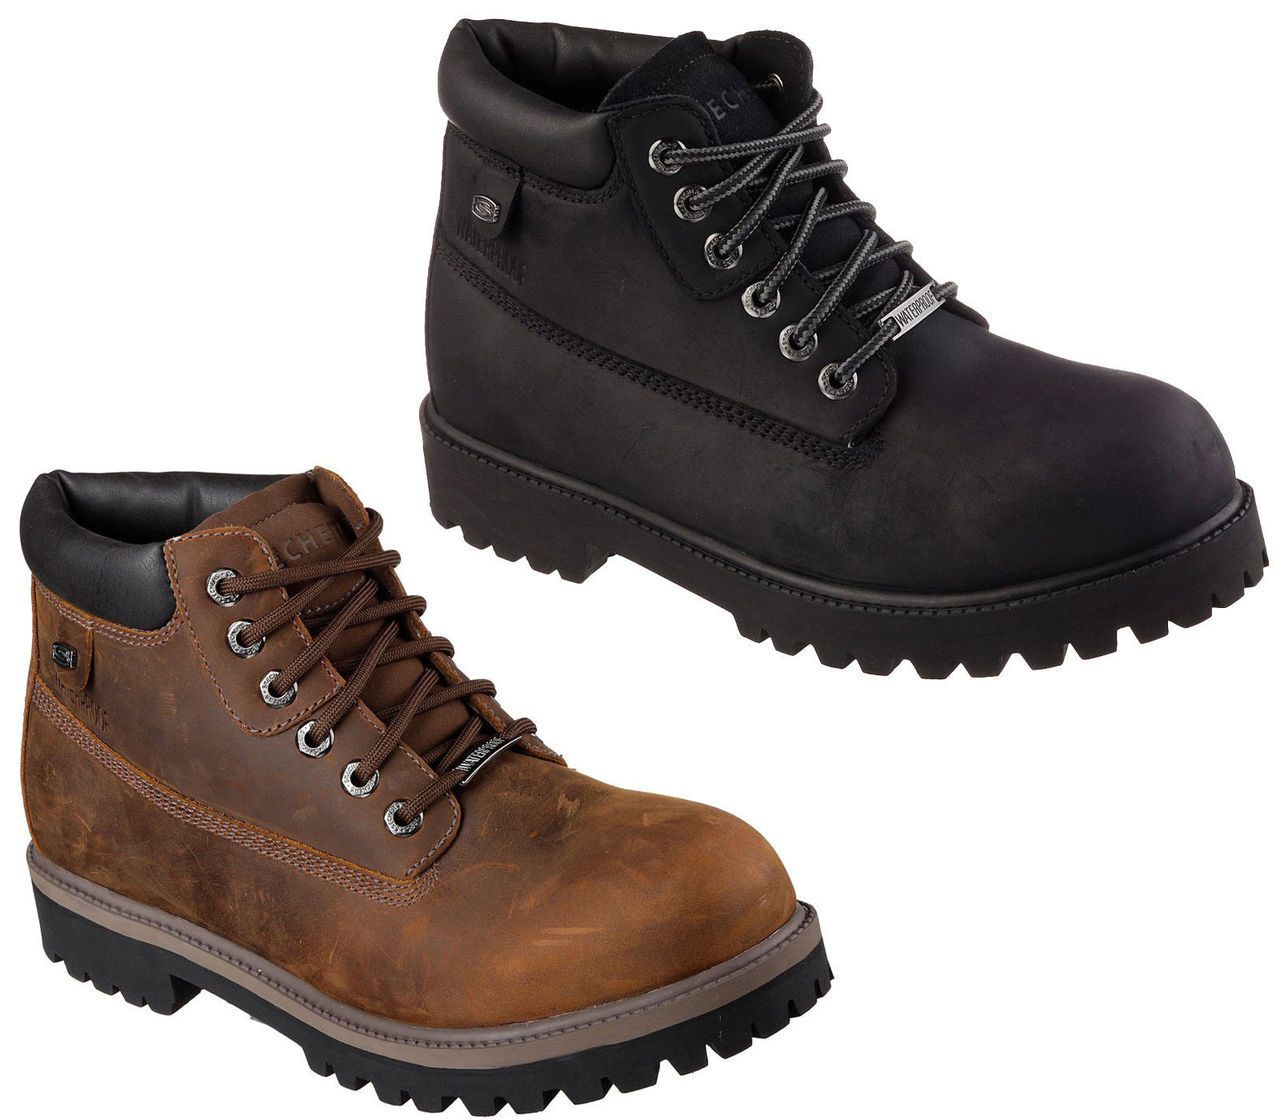 Mens skechers waterproof work style boots available in